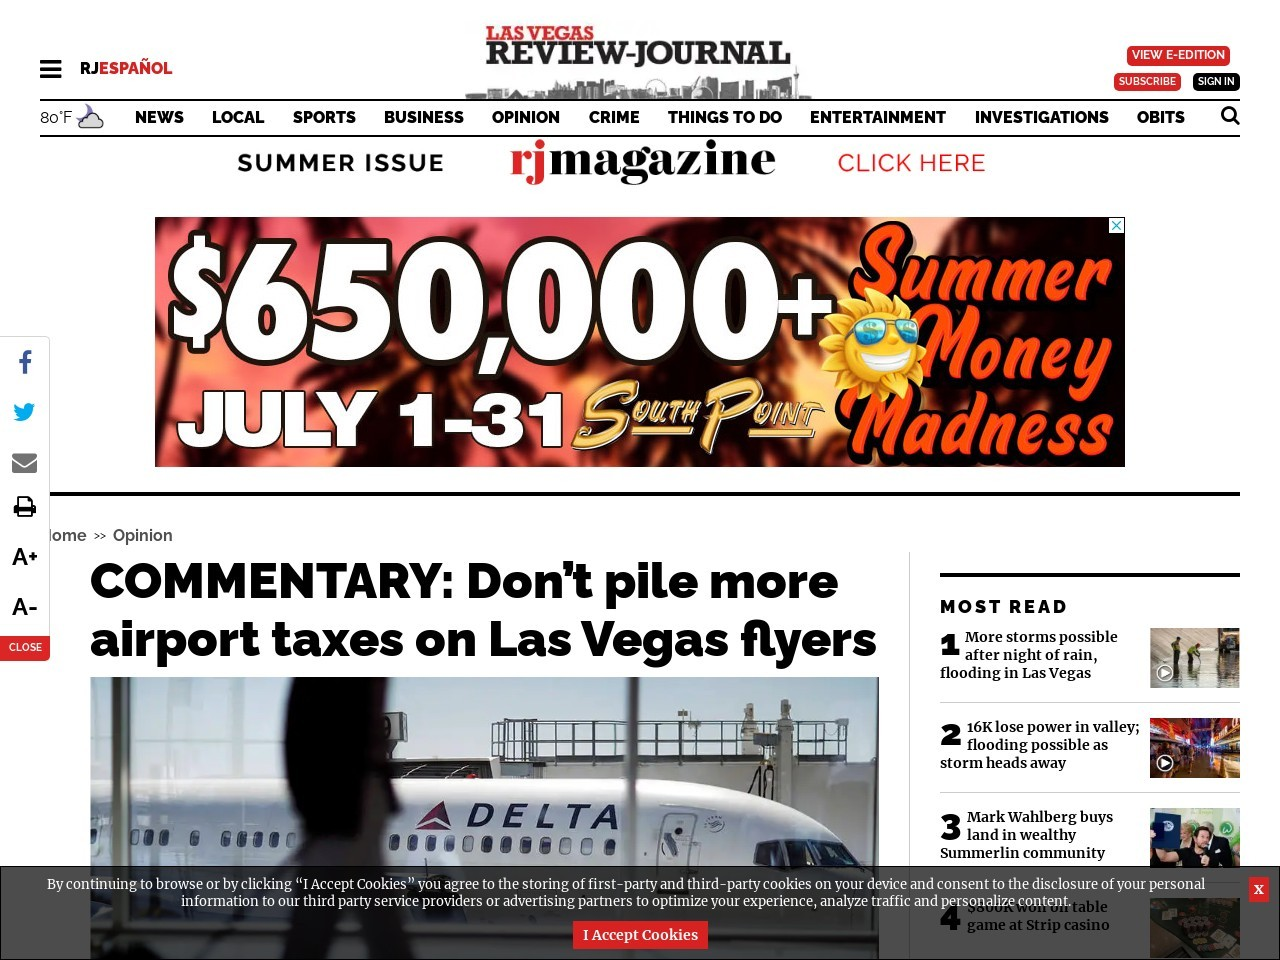 COMMENTARY: Don't pile more airport taxes on Las Vegas flyers